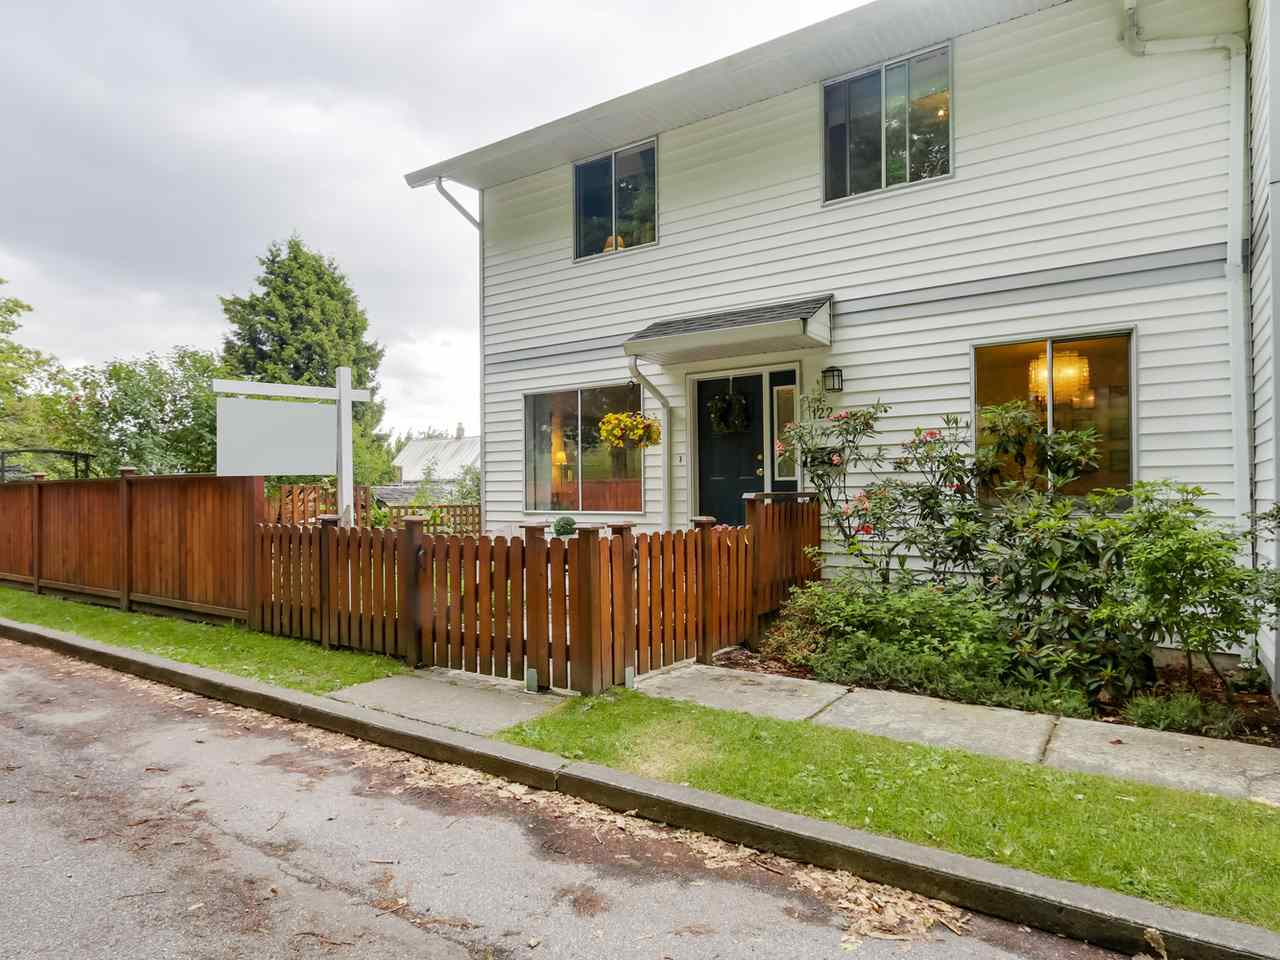 Main Photo: 122 MINER Street in New Westminster: Sapperton House 1/2 Duplex for sale : MLS® # R2081119